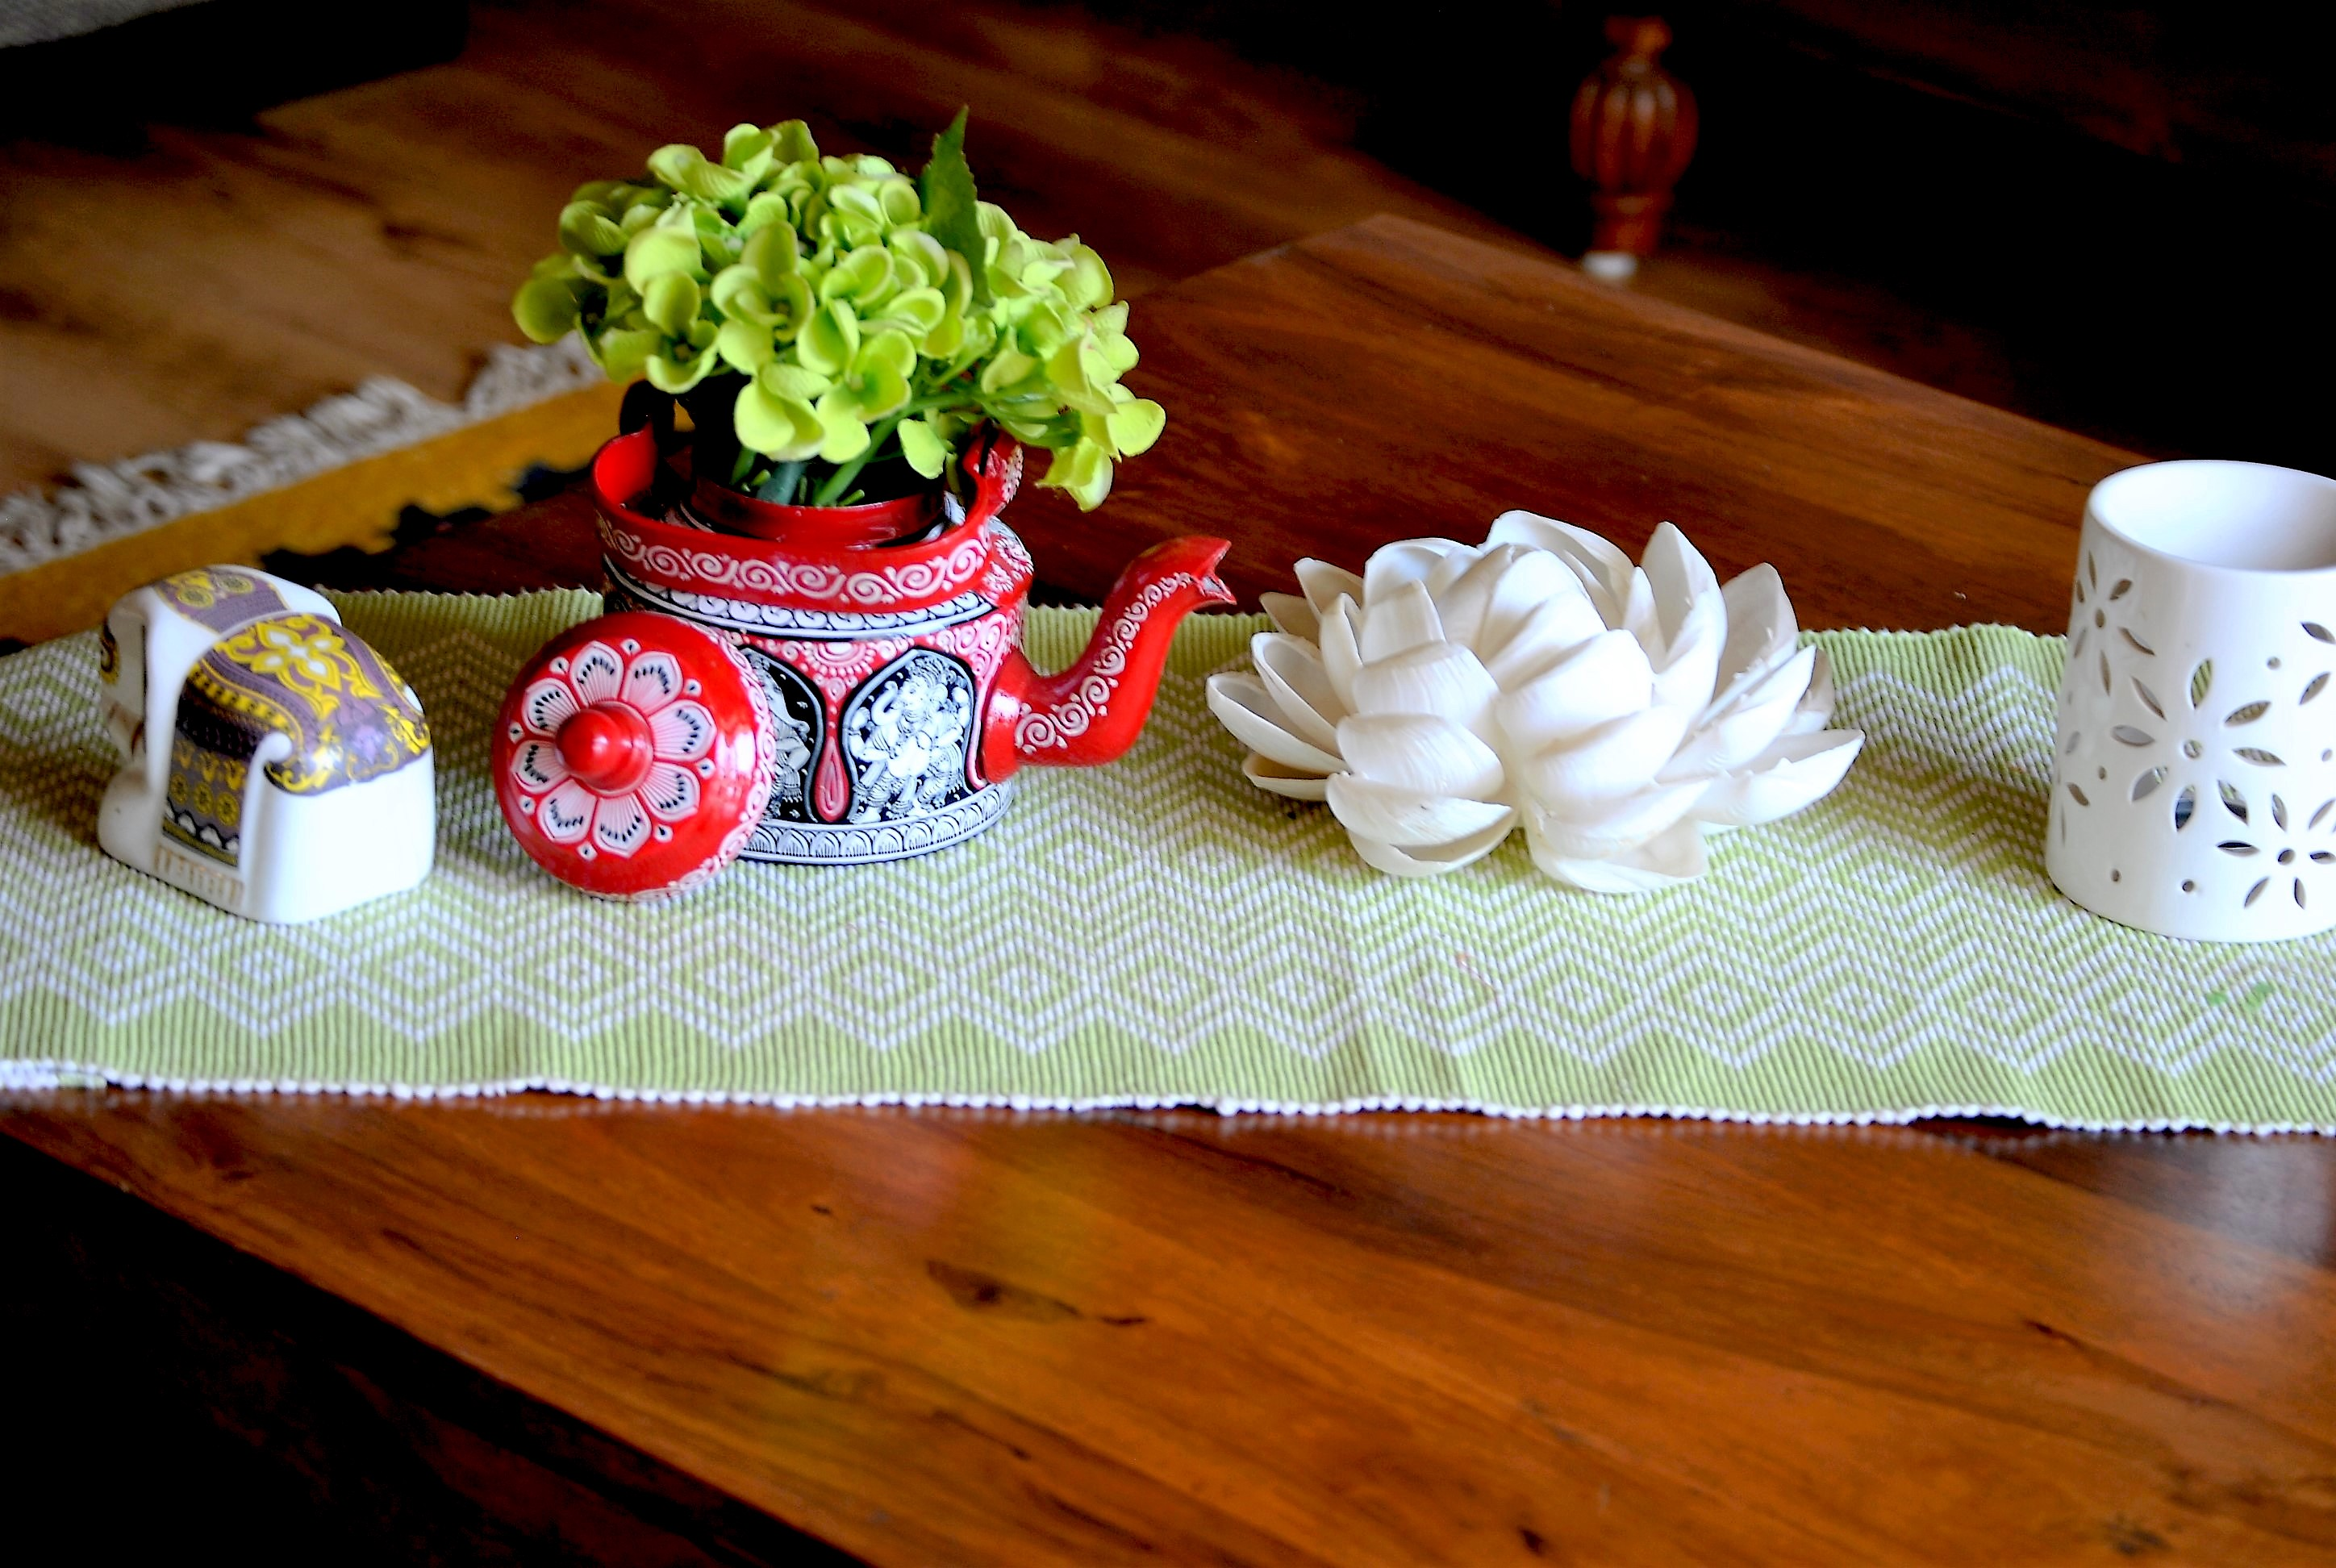 Top-decor-ideas-for-your-home-with-hand-painted-kettles2 Top decor ideas for your home with hand-painted kettles